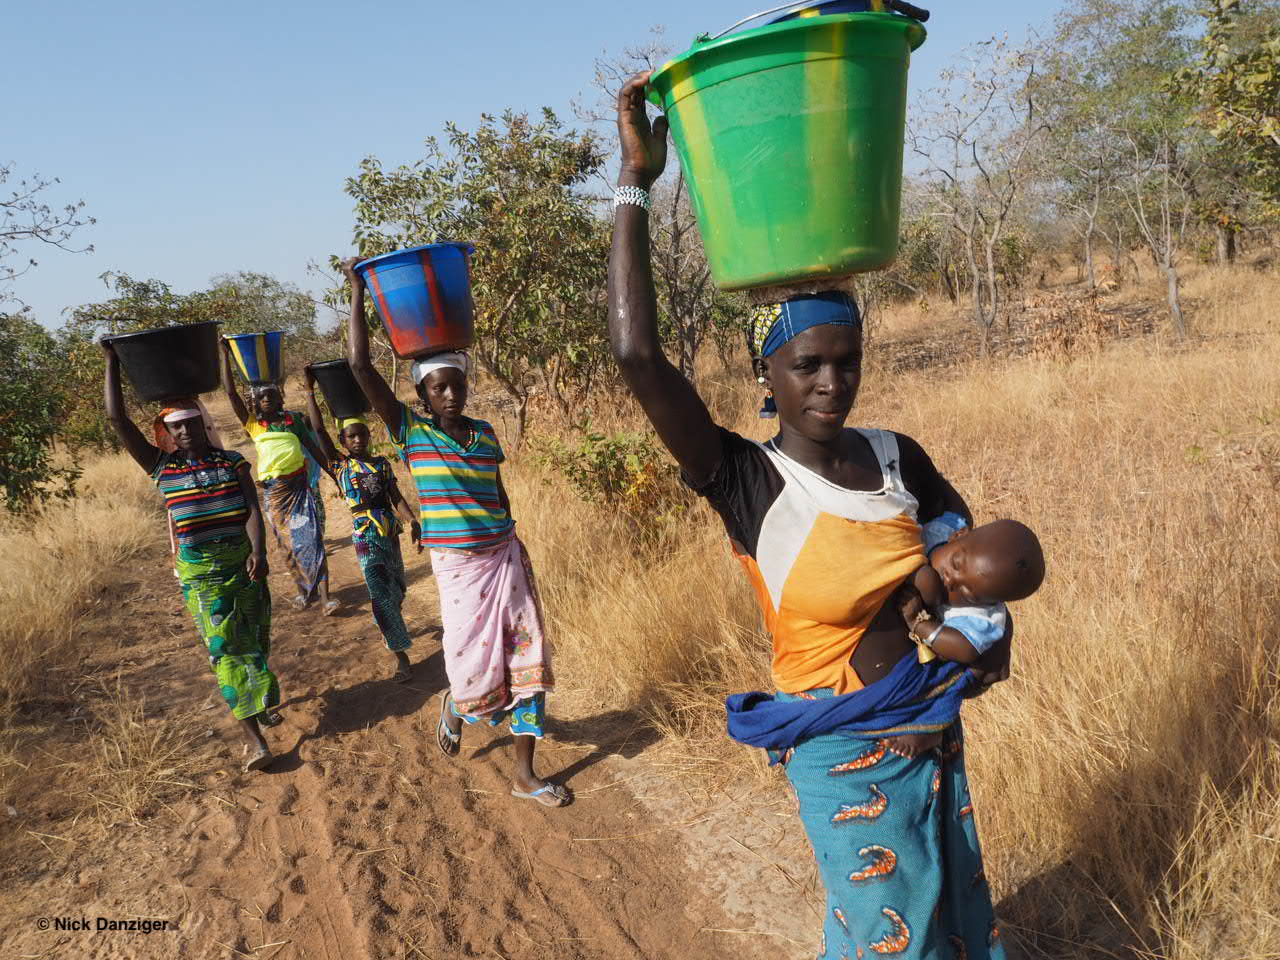 Drinkable water for all